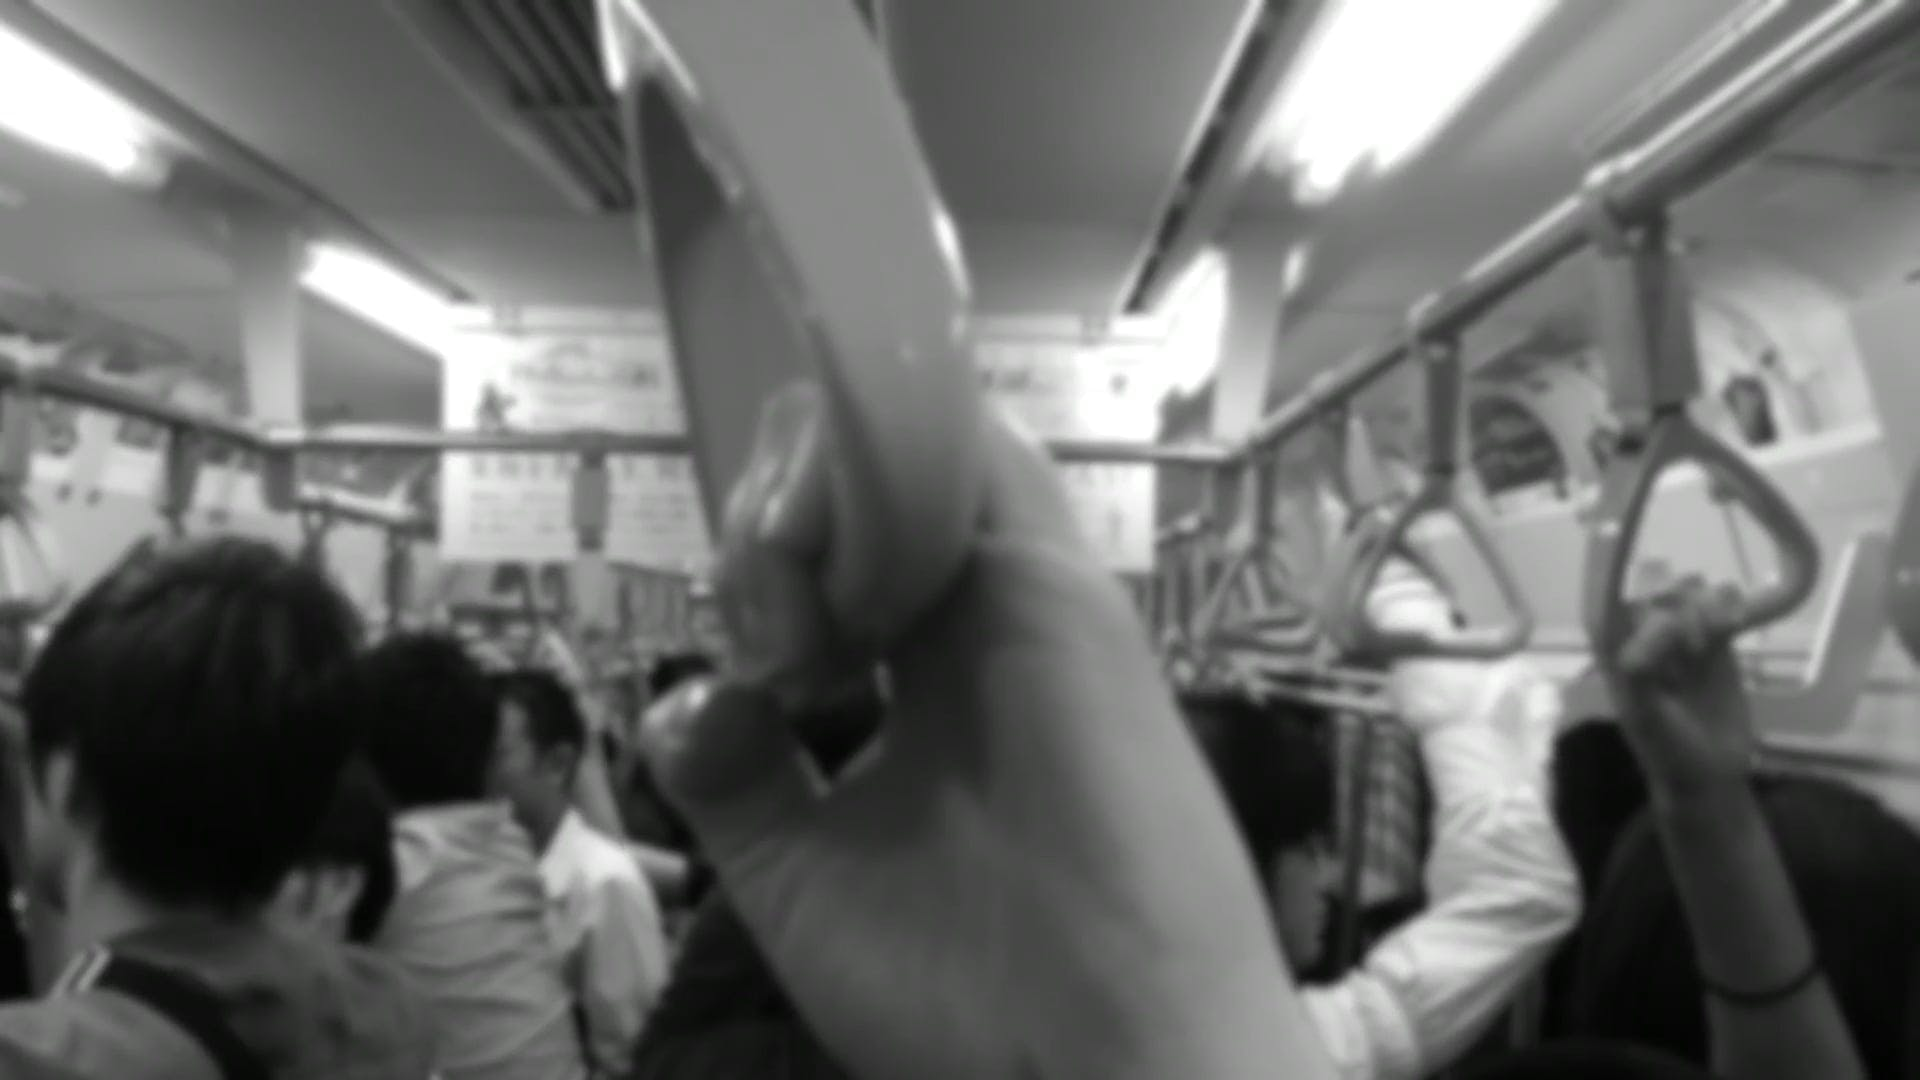 Black And White Video Of People Inside The Train